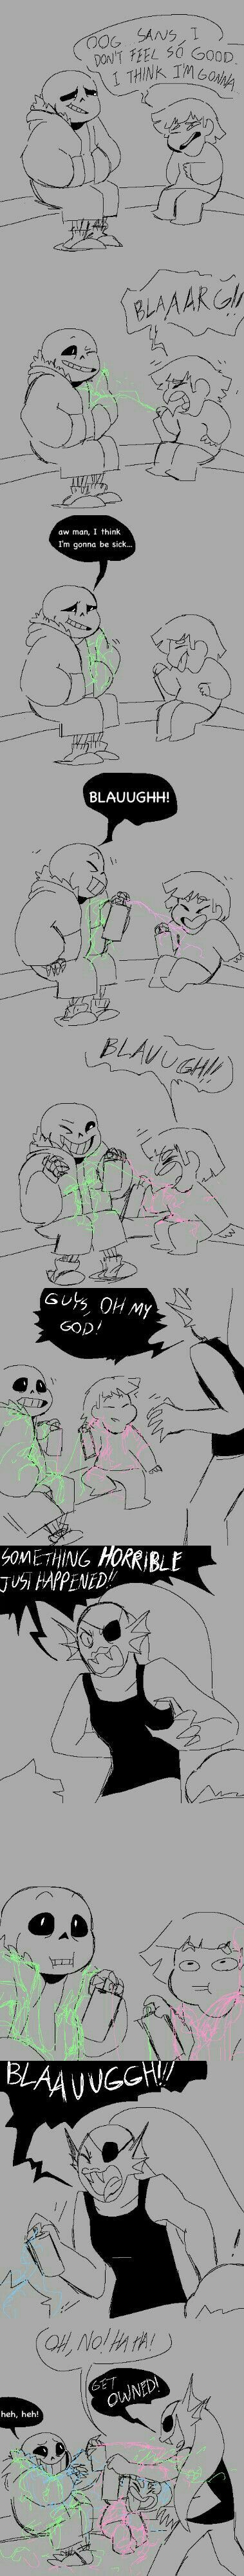 Undertale×Gravity falls